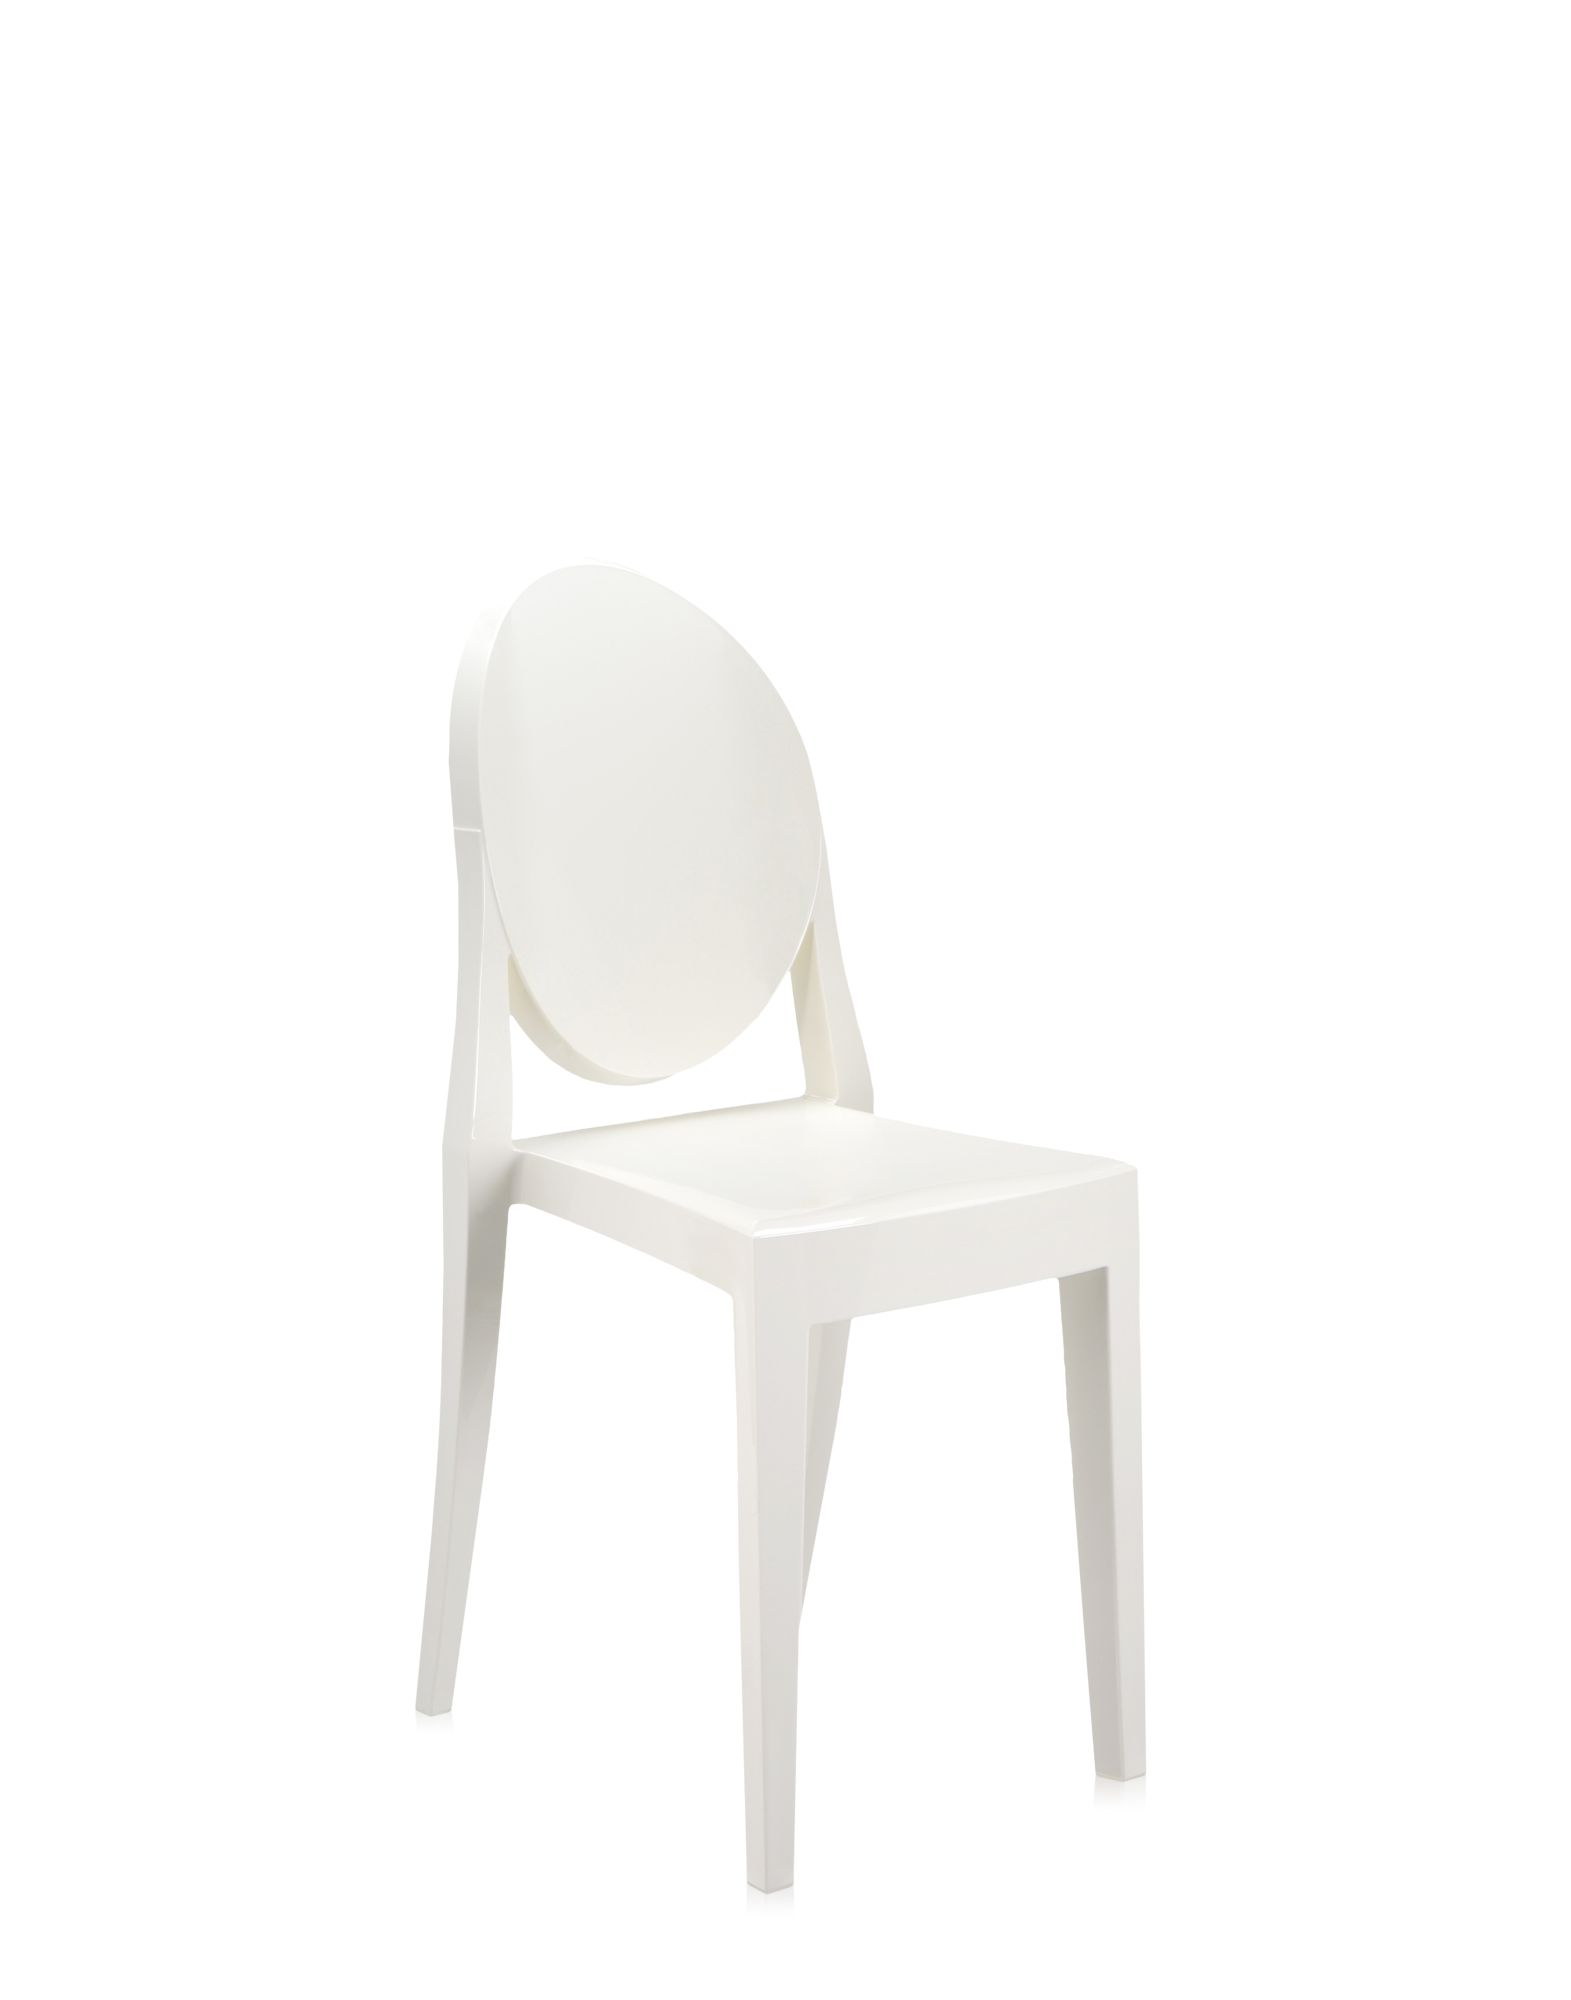 Chair Kartell Victoria Ghost covering white